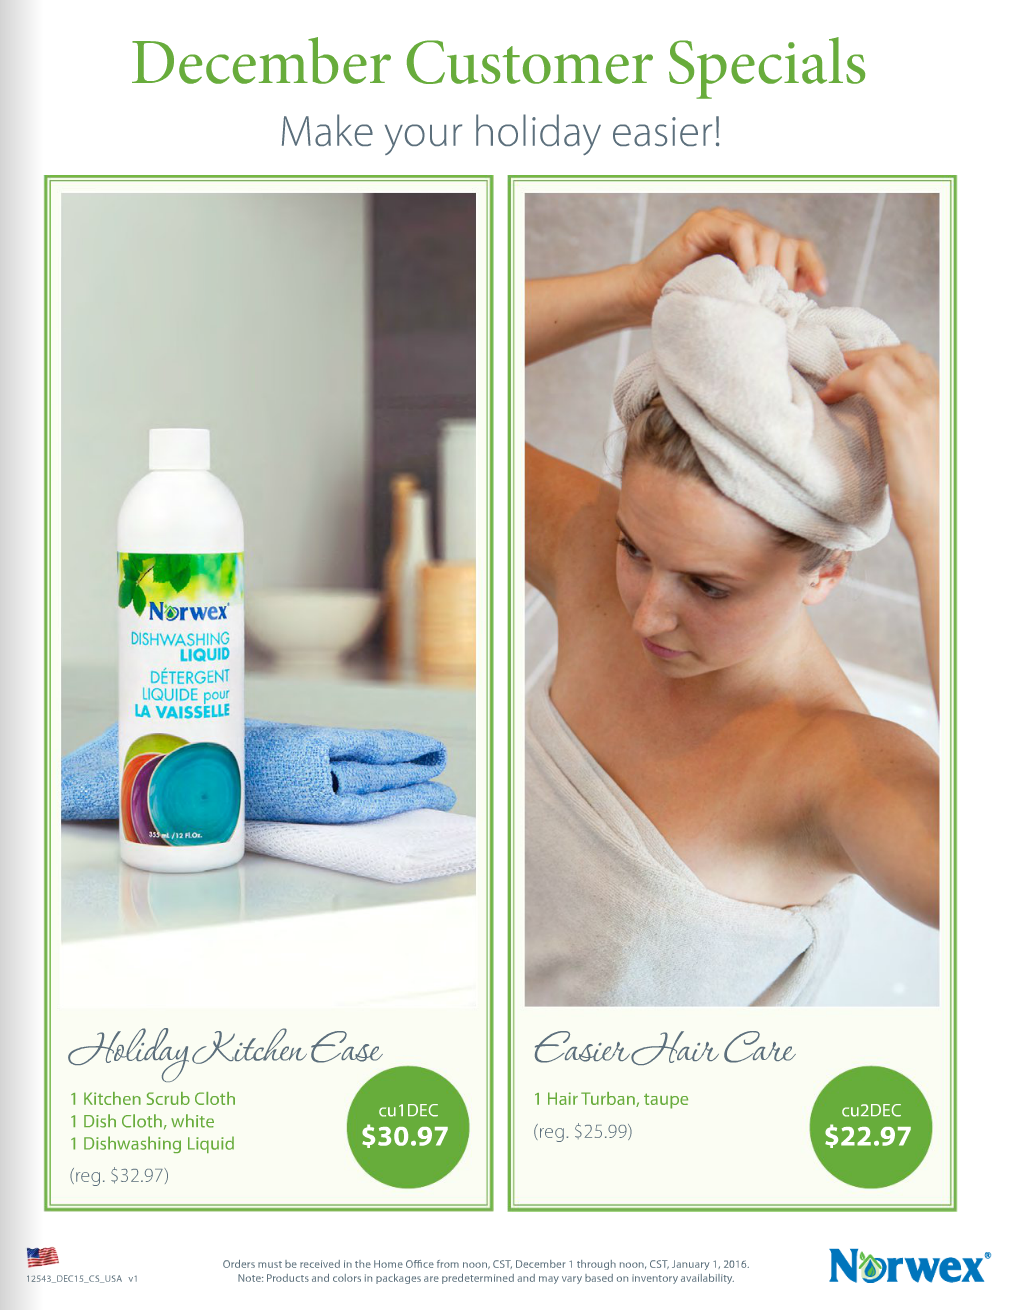 December Norwex Hostess and Customer Specials